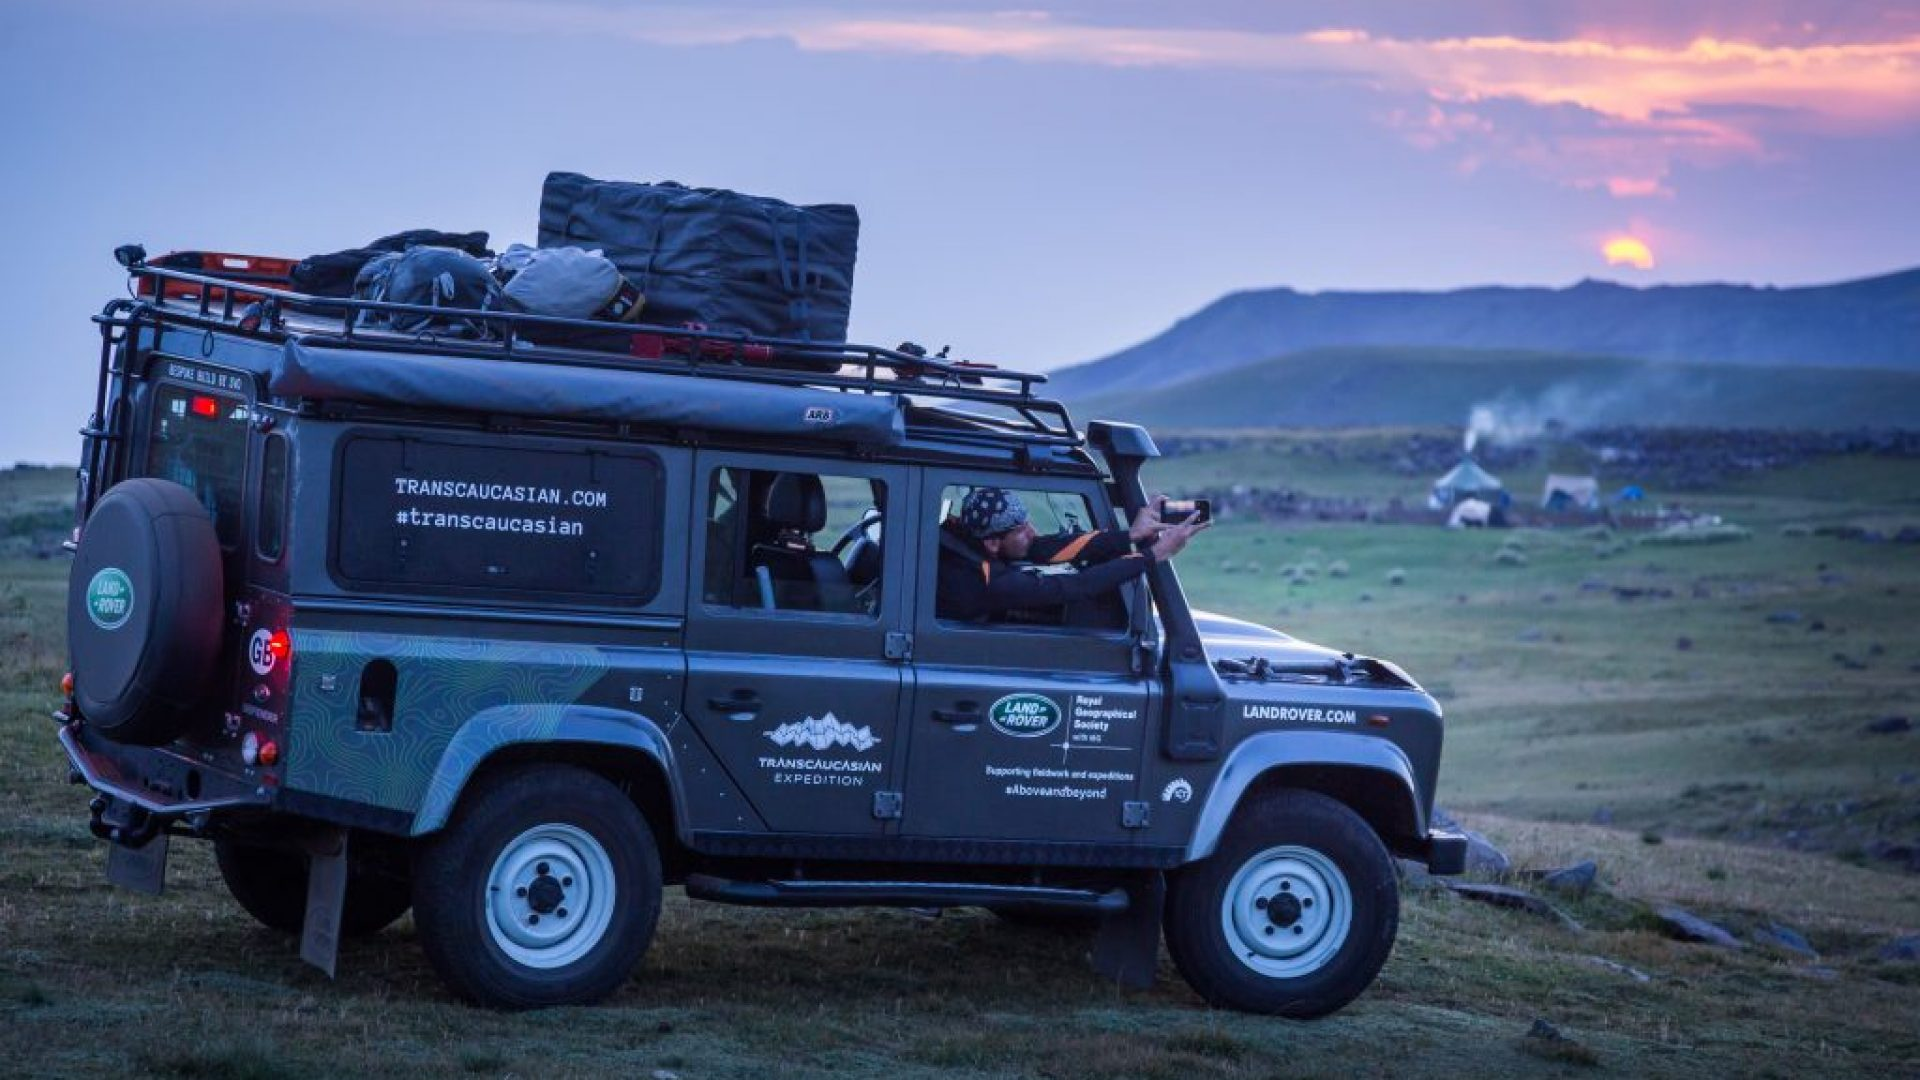 Land Rover, TransCaucasian Expedition, Armenia